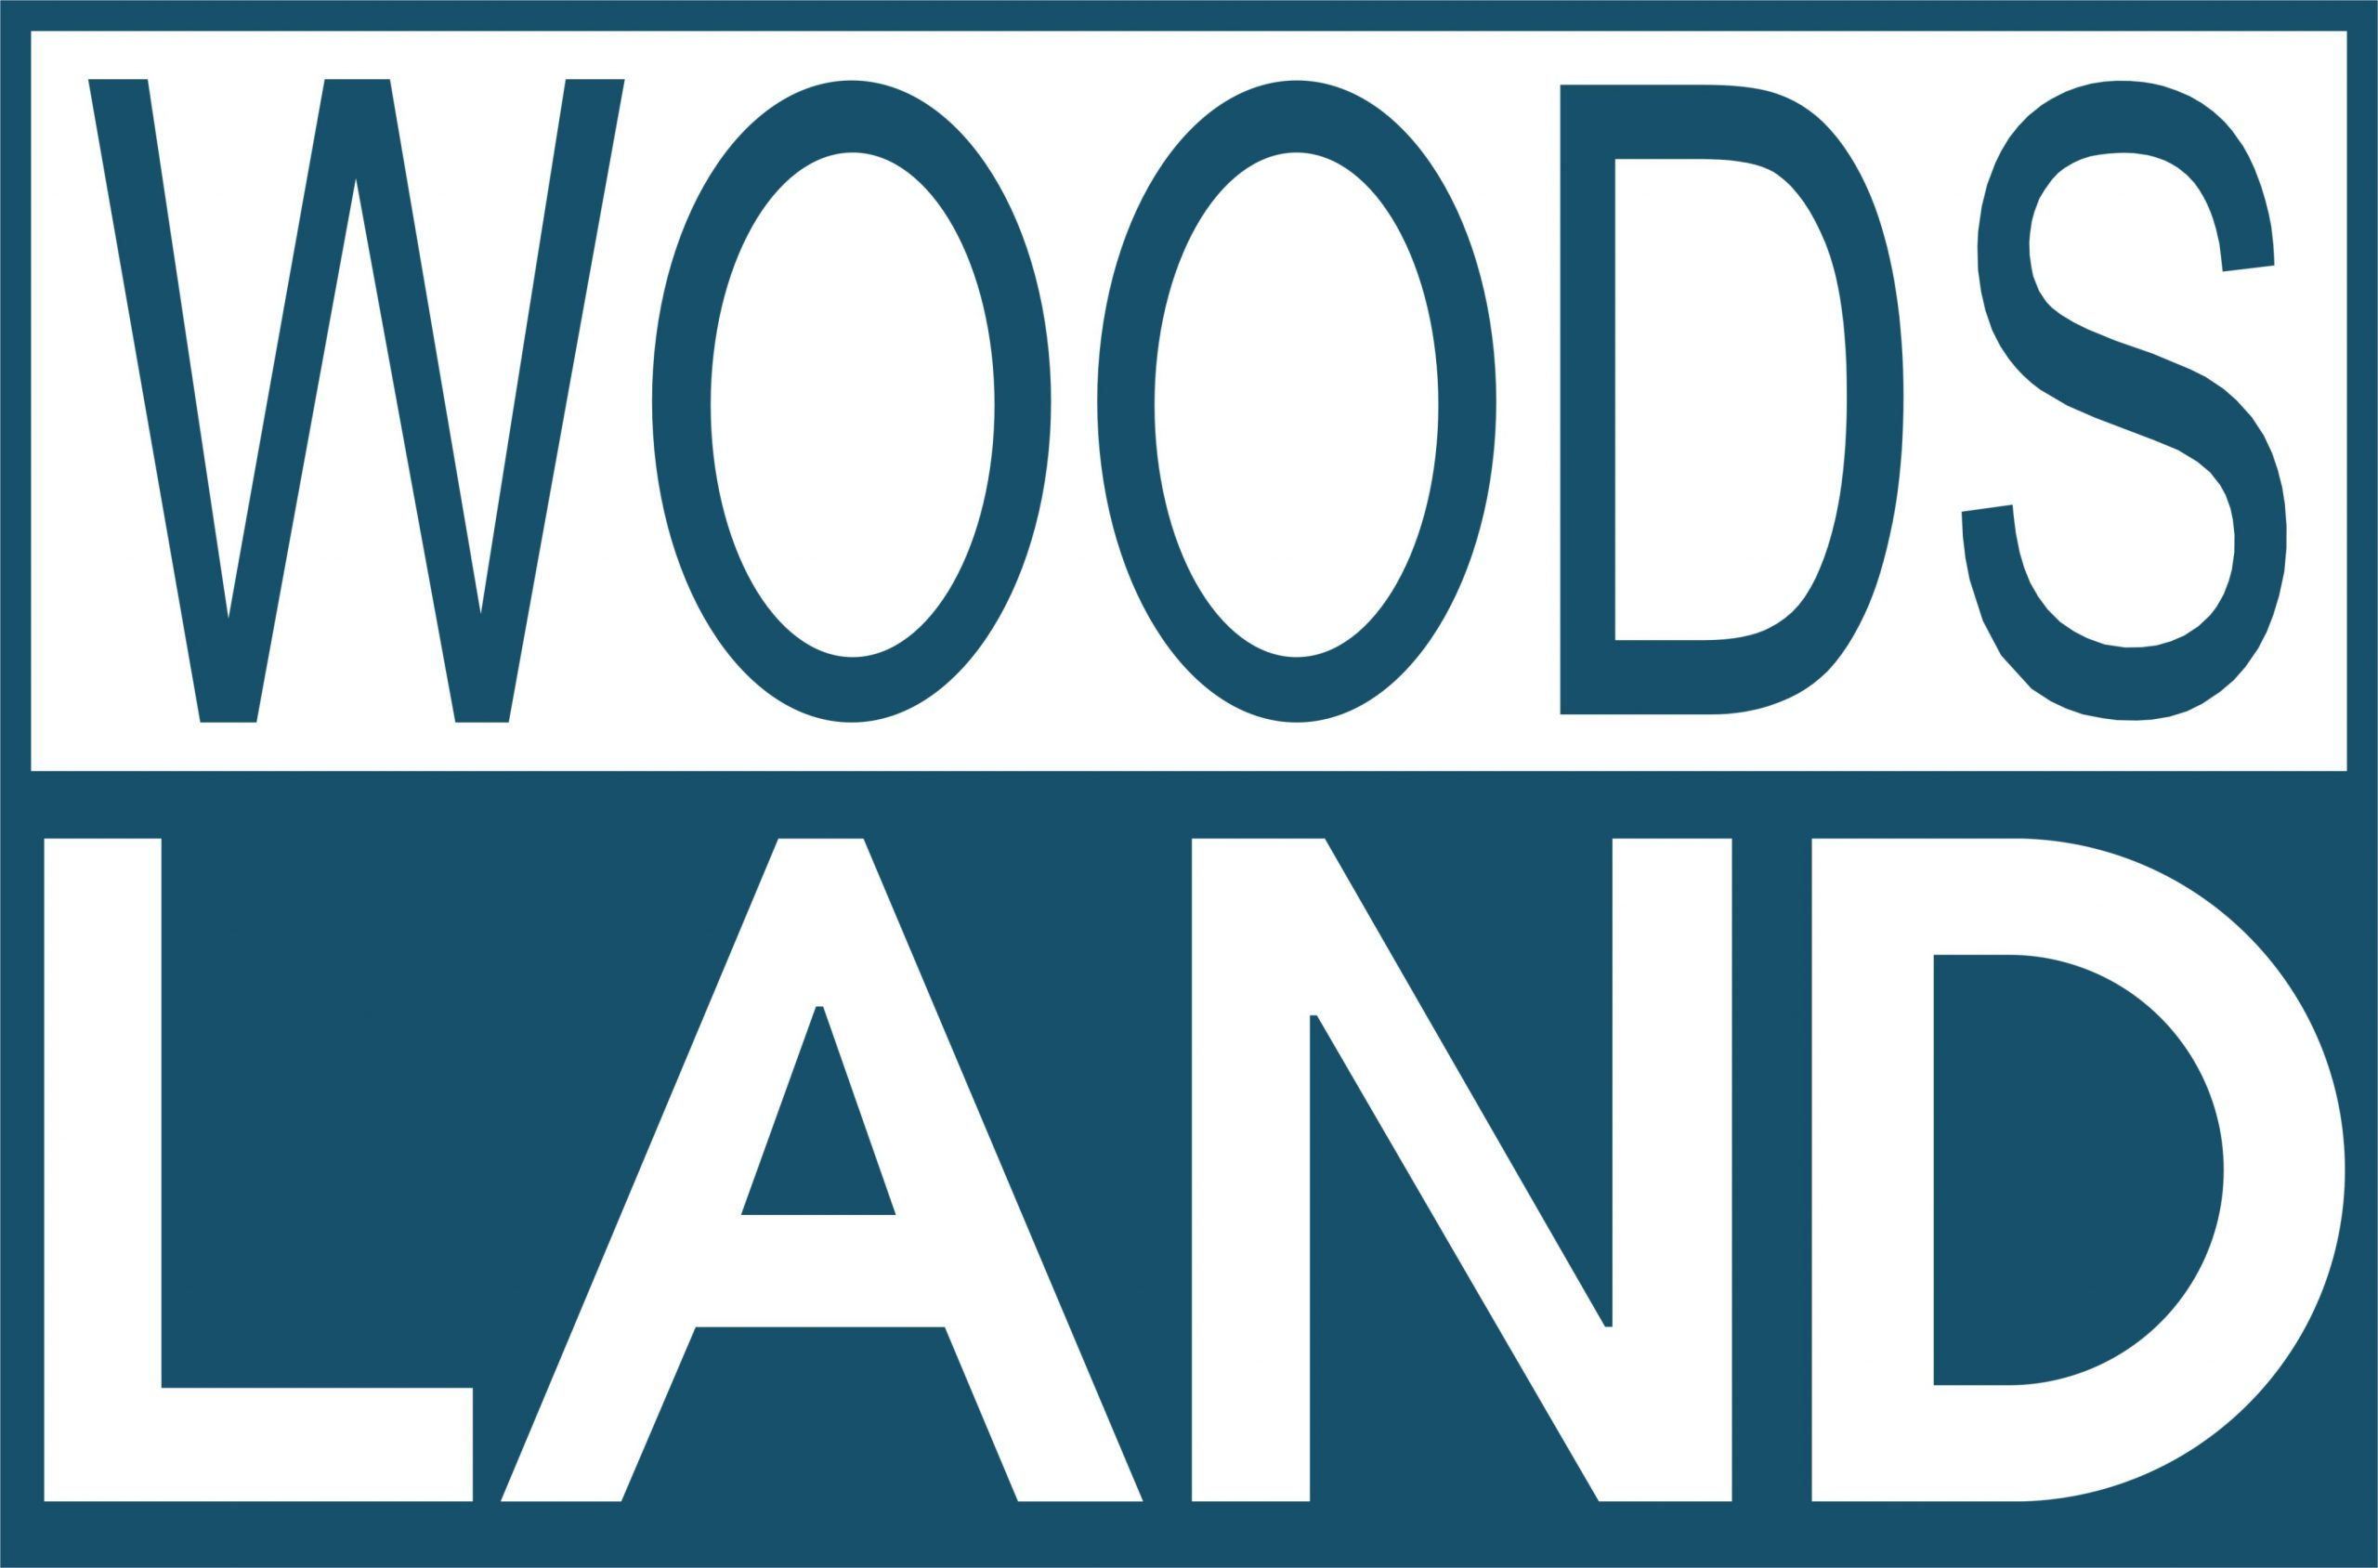 Woodsland Furniture